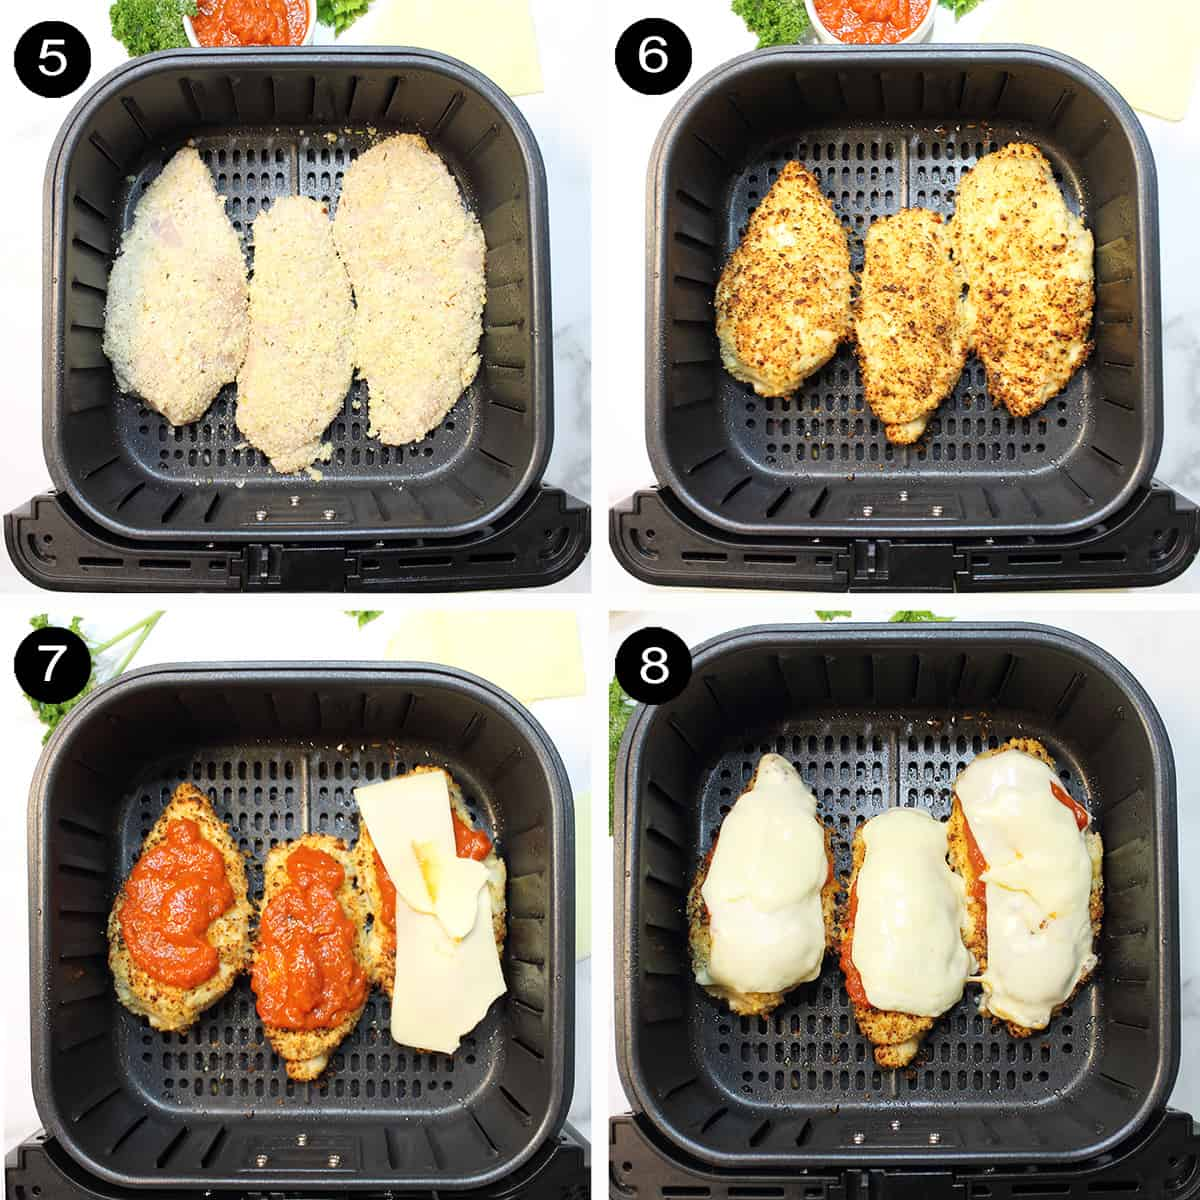 Finishing steps to cook and top chicken with sauce and cheese.